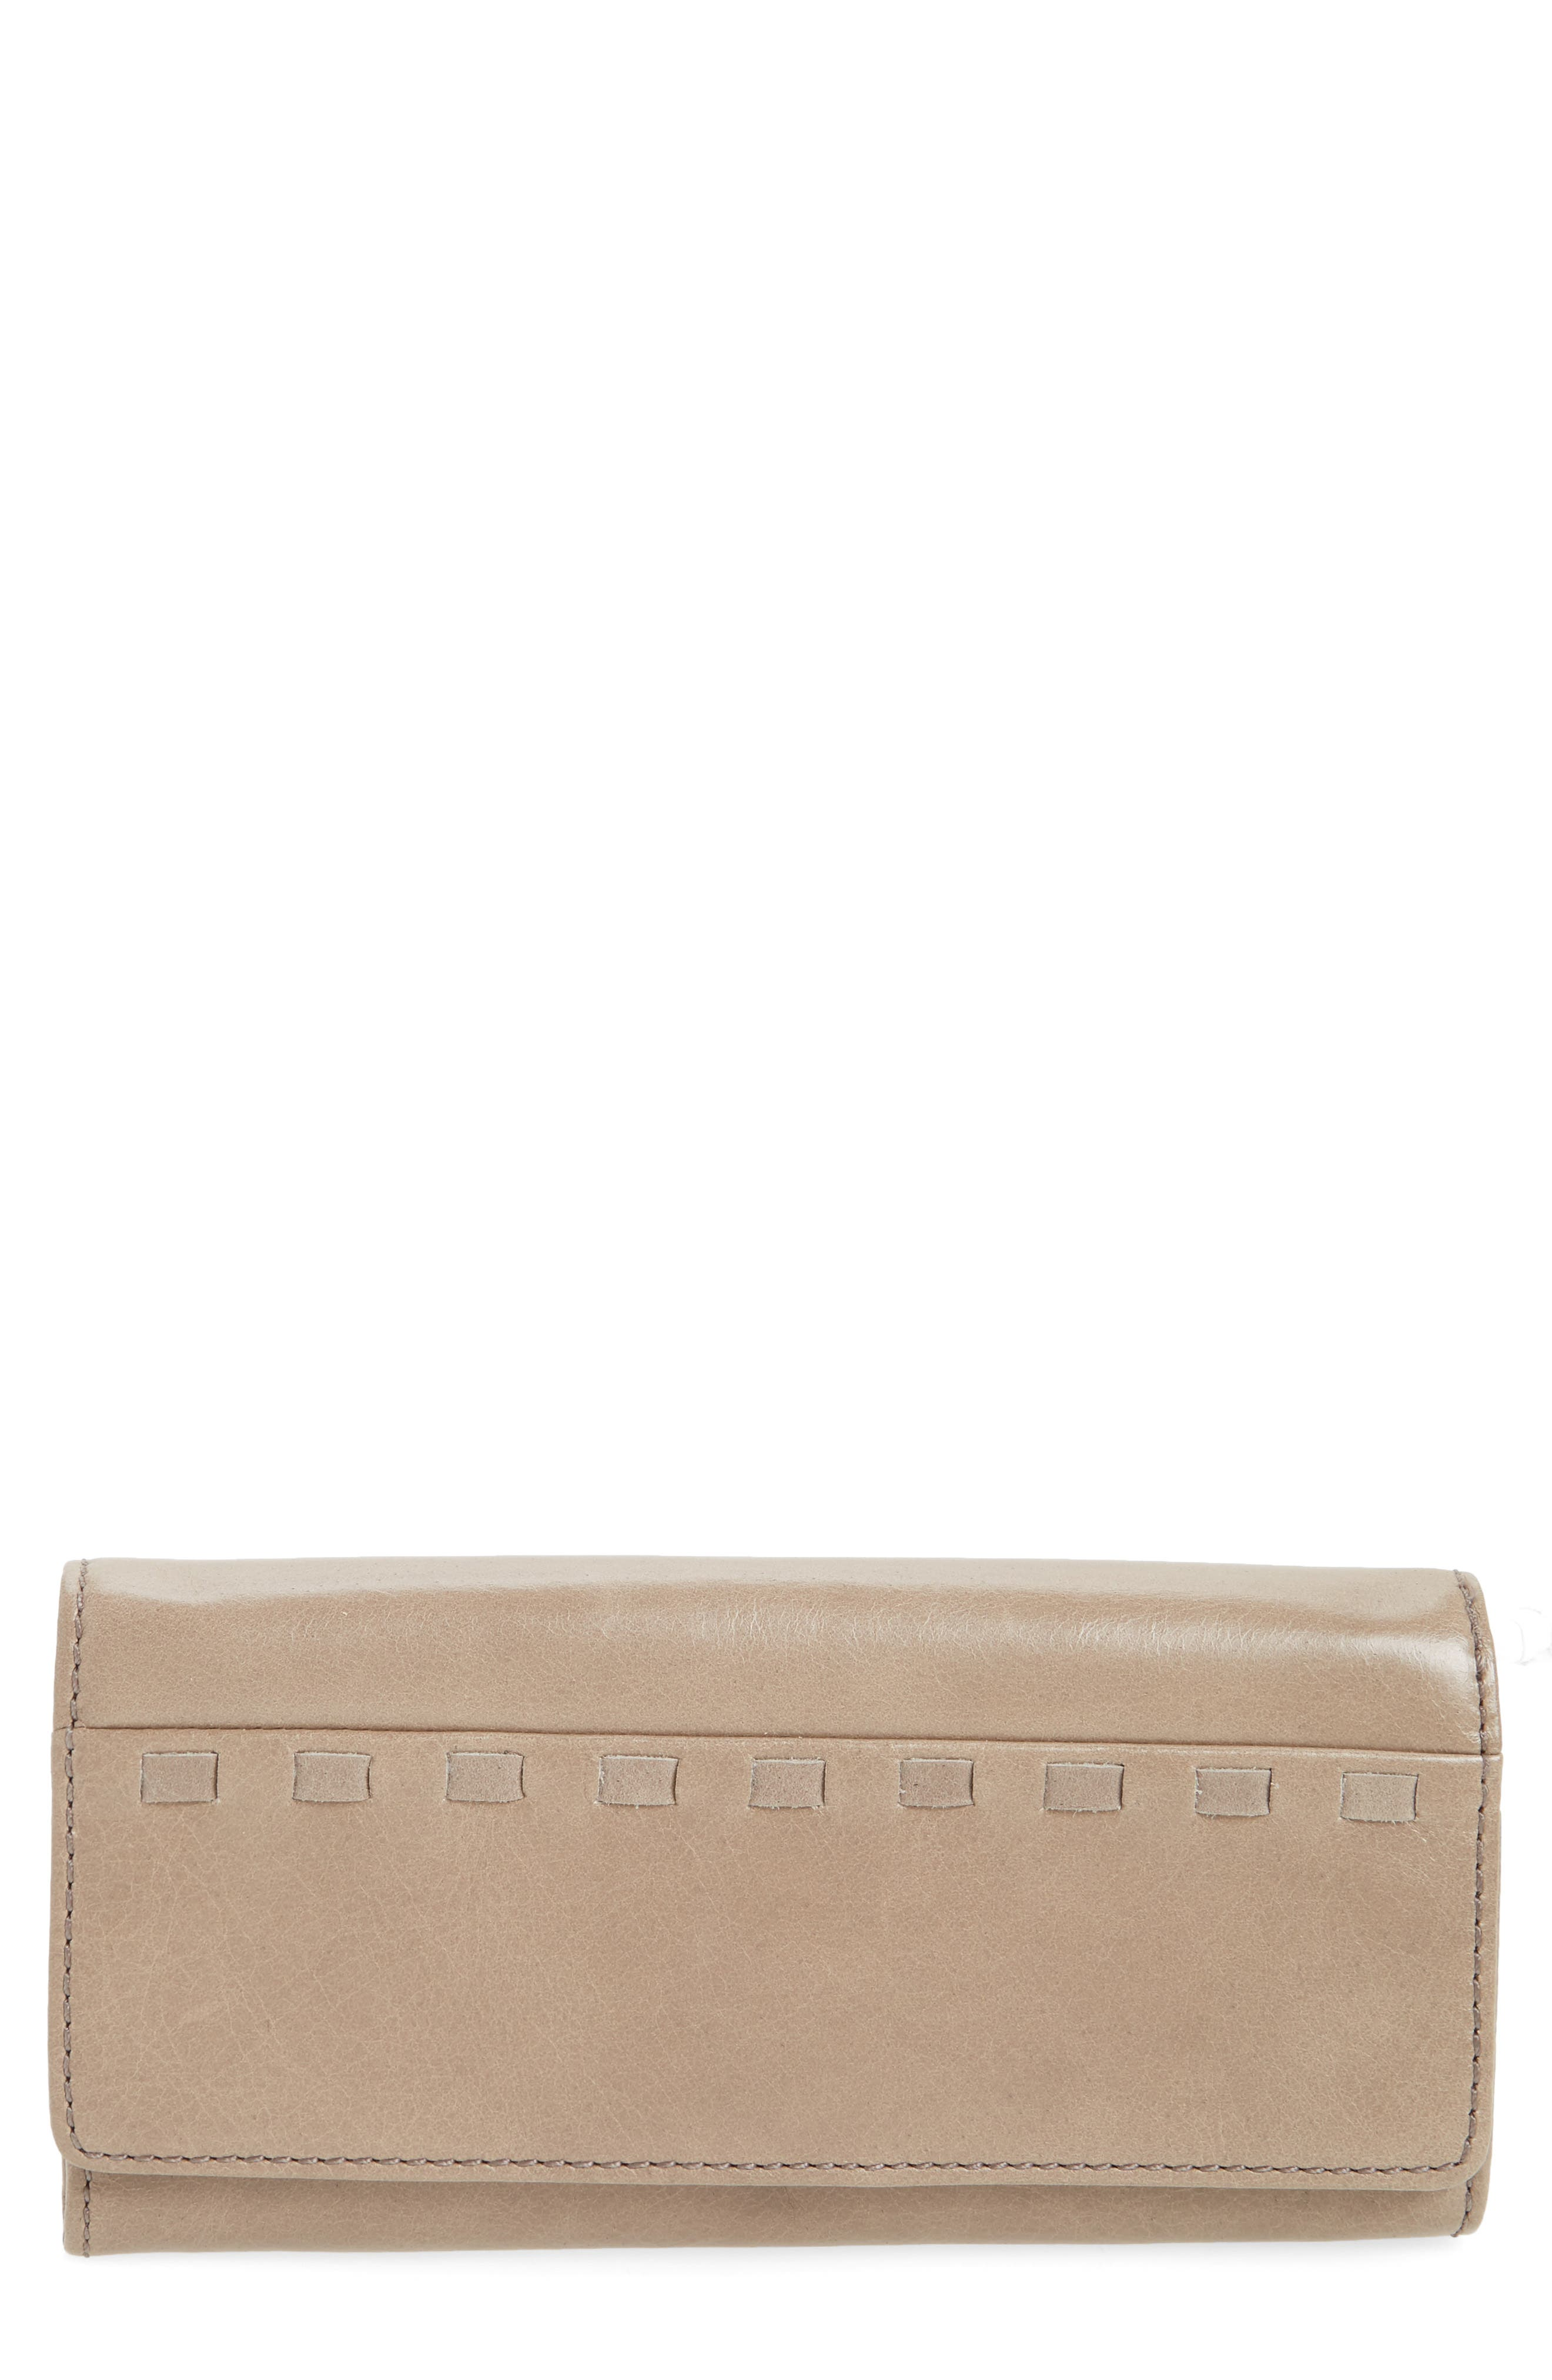 Rider Leather Wallet,                         Main,                         color, Ash